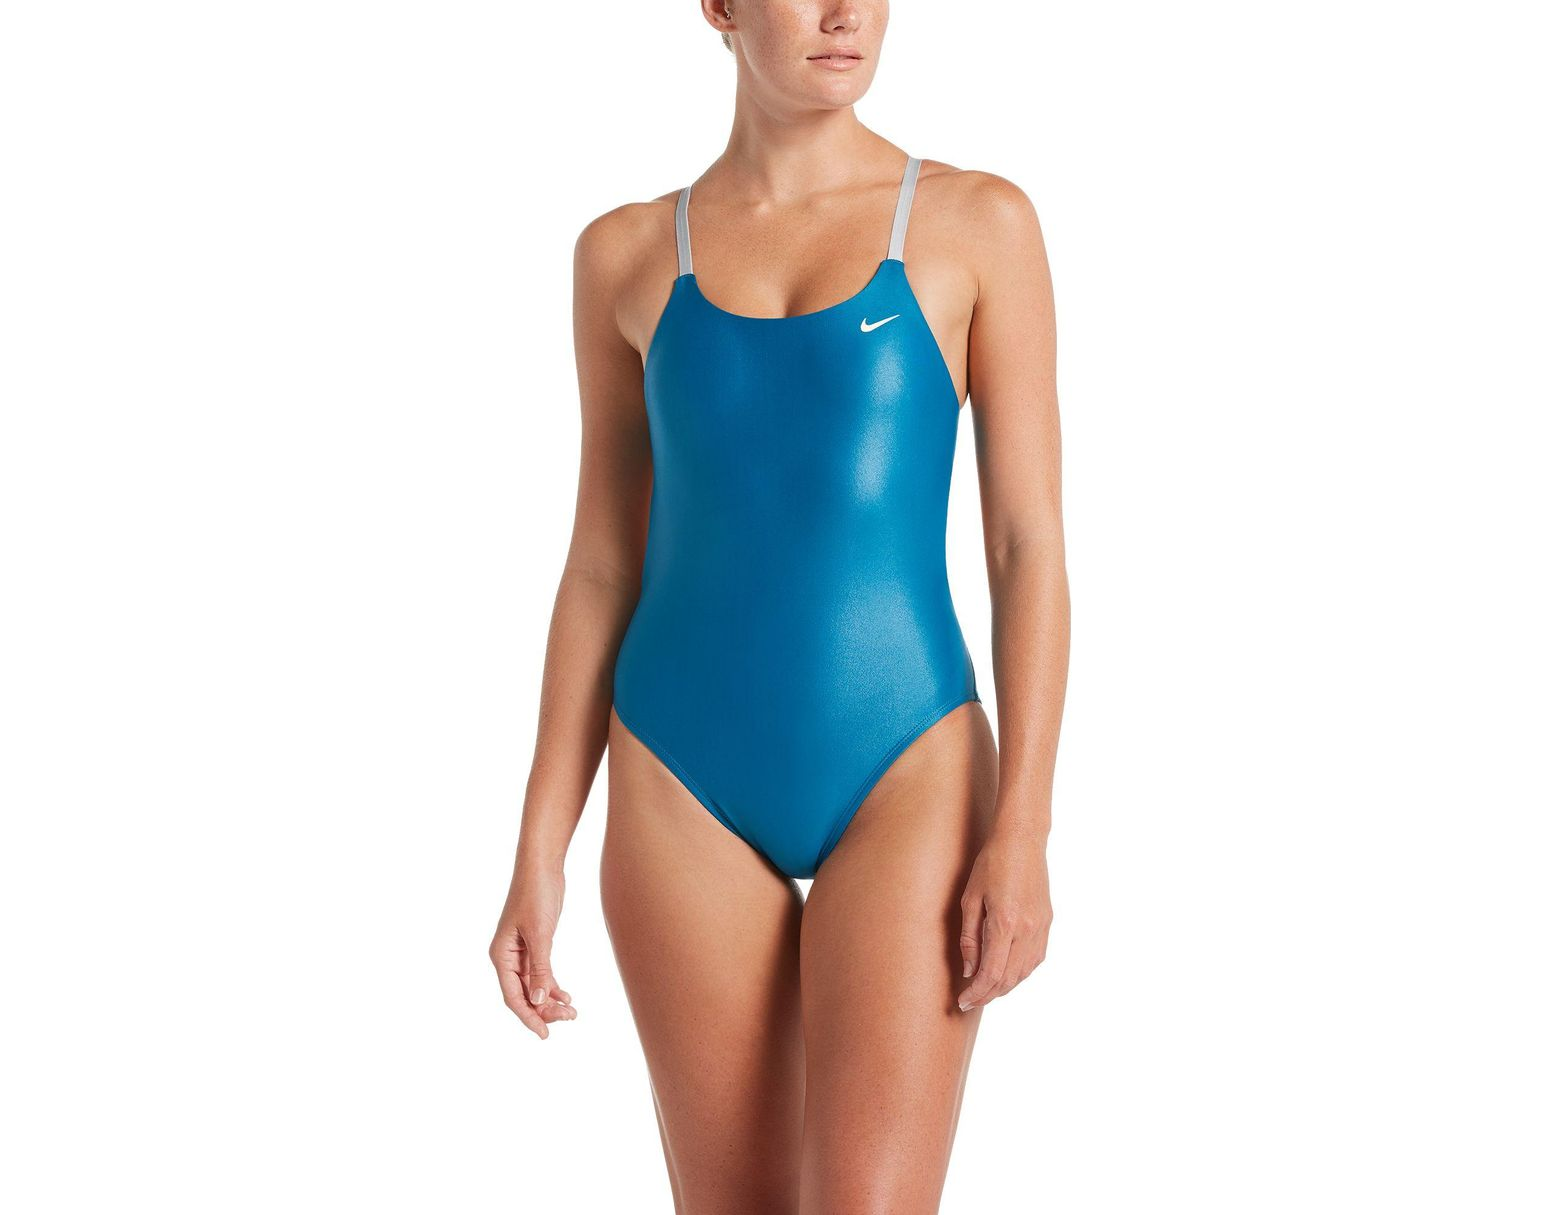 a7d0dbe87ec32 Nike Flash Bonded Cut-out One Piece Swimsuit in Blue - Lyst